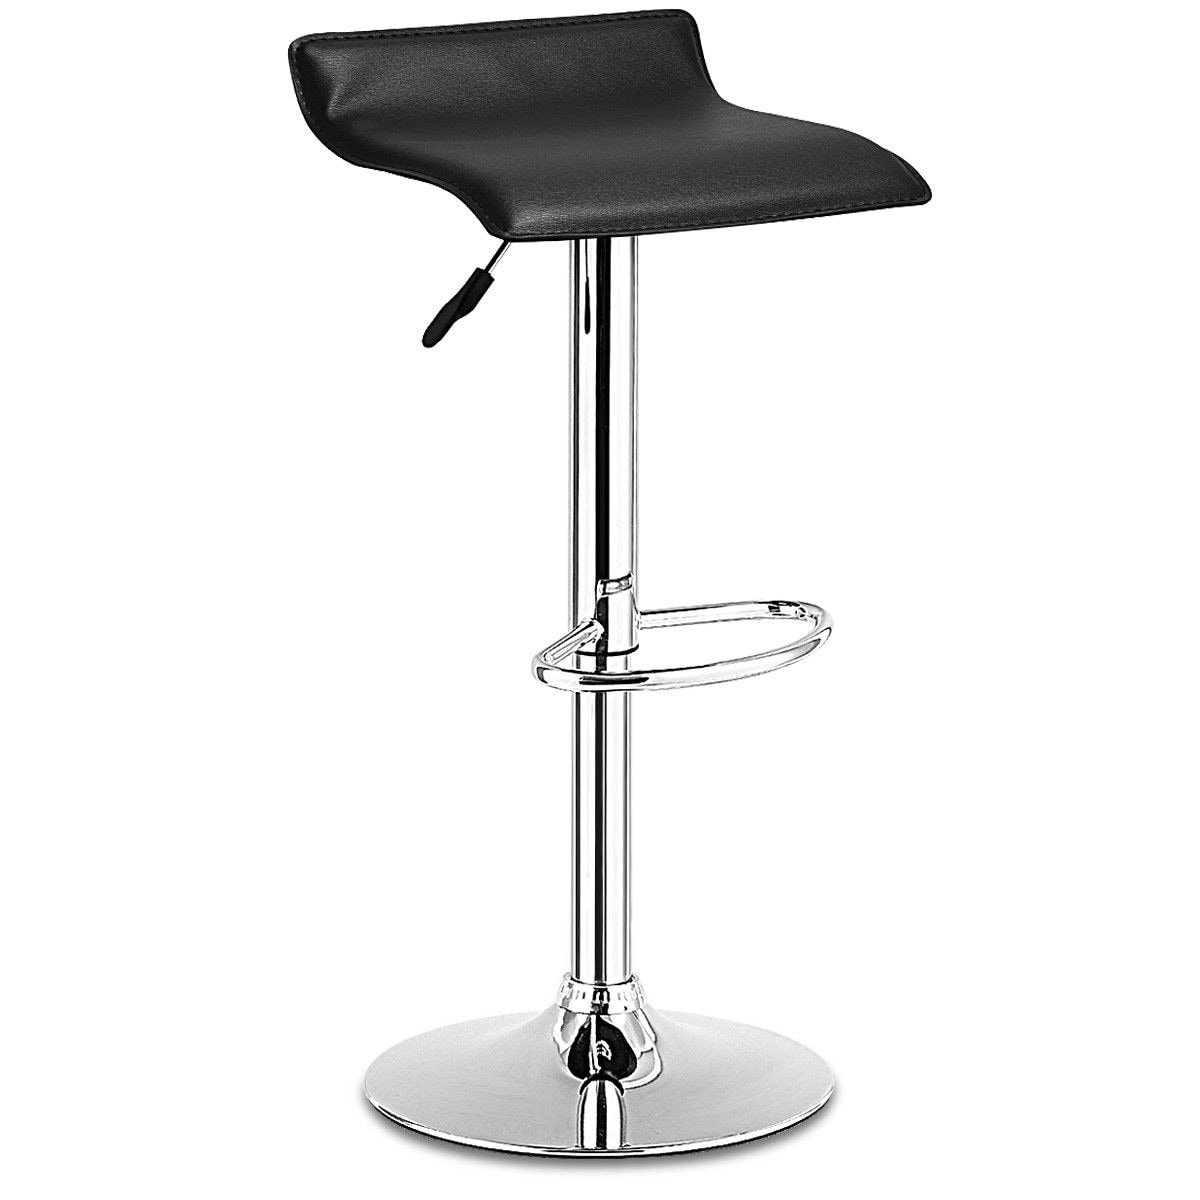 Incredible Costway 1 Pc Swivel Bar Stool Adjustable Modern Leather Dinning Counter Chair Black Lamtechconsult Wood Chair Design Ideas Lamtechconsultcom